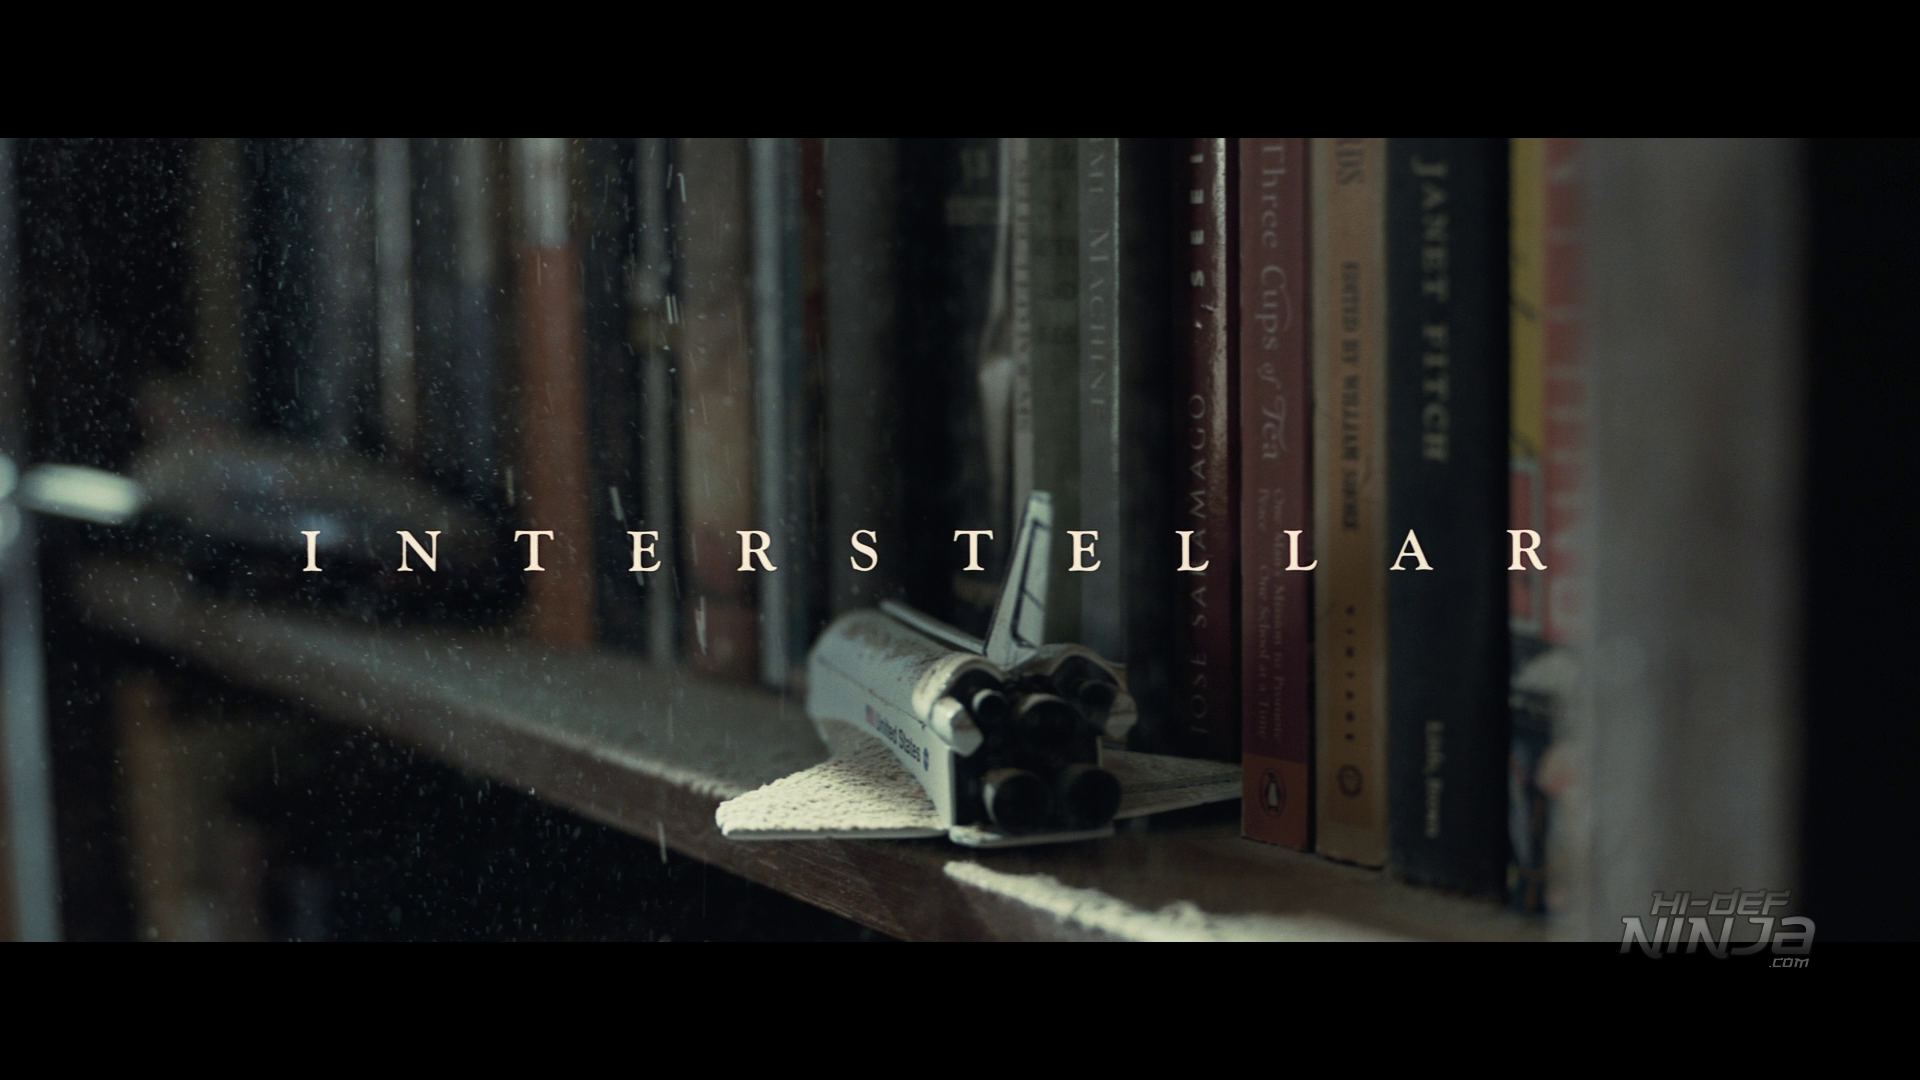 Interstellar-HiDefNinja (1)